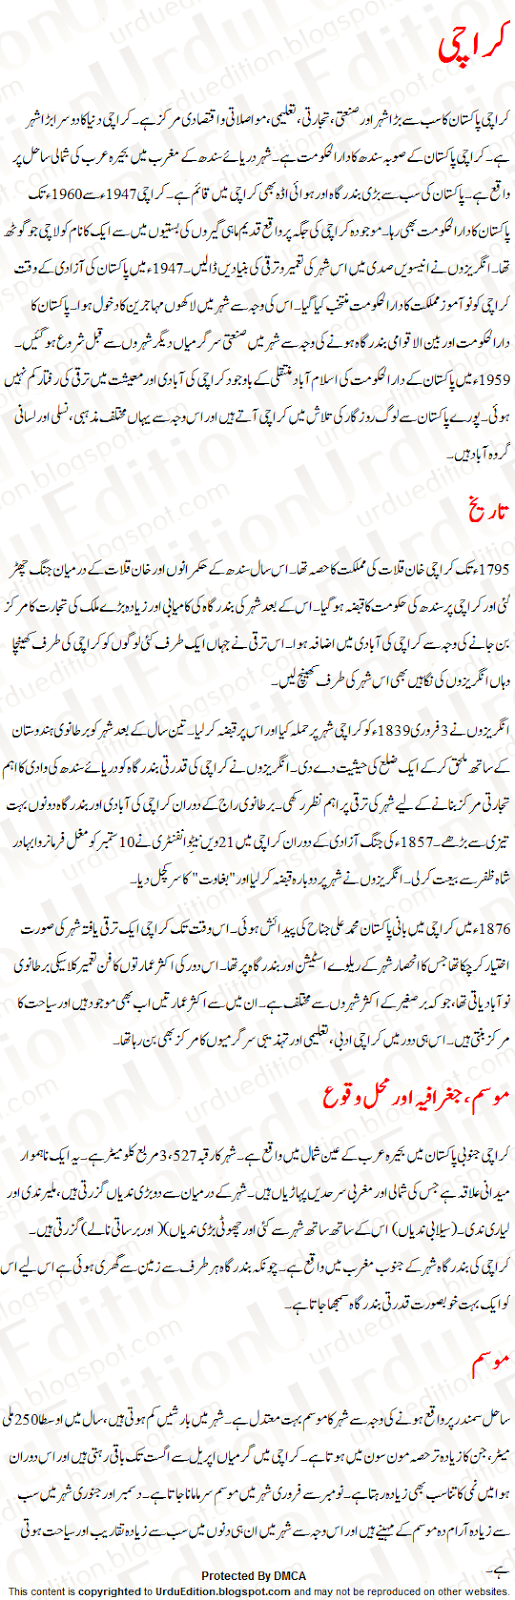 Essay On Karachi In Urdu 1